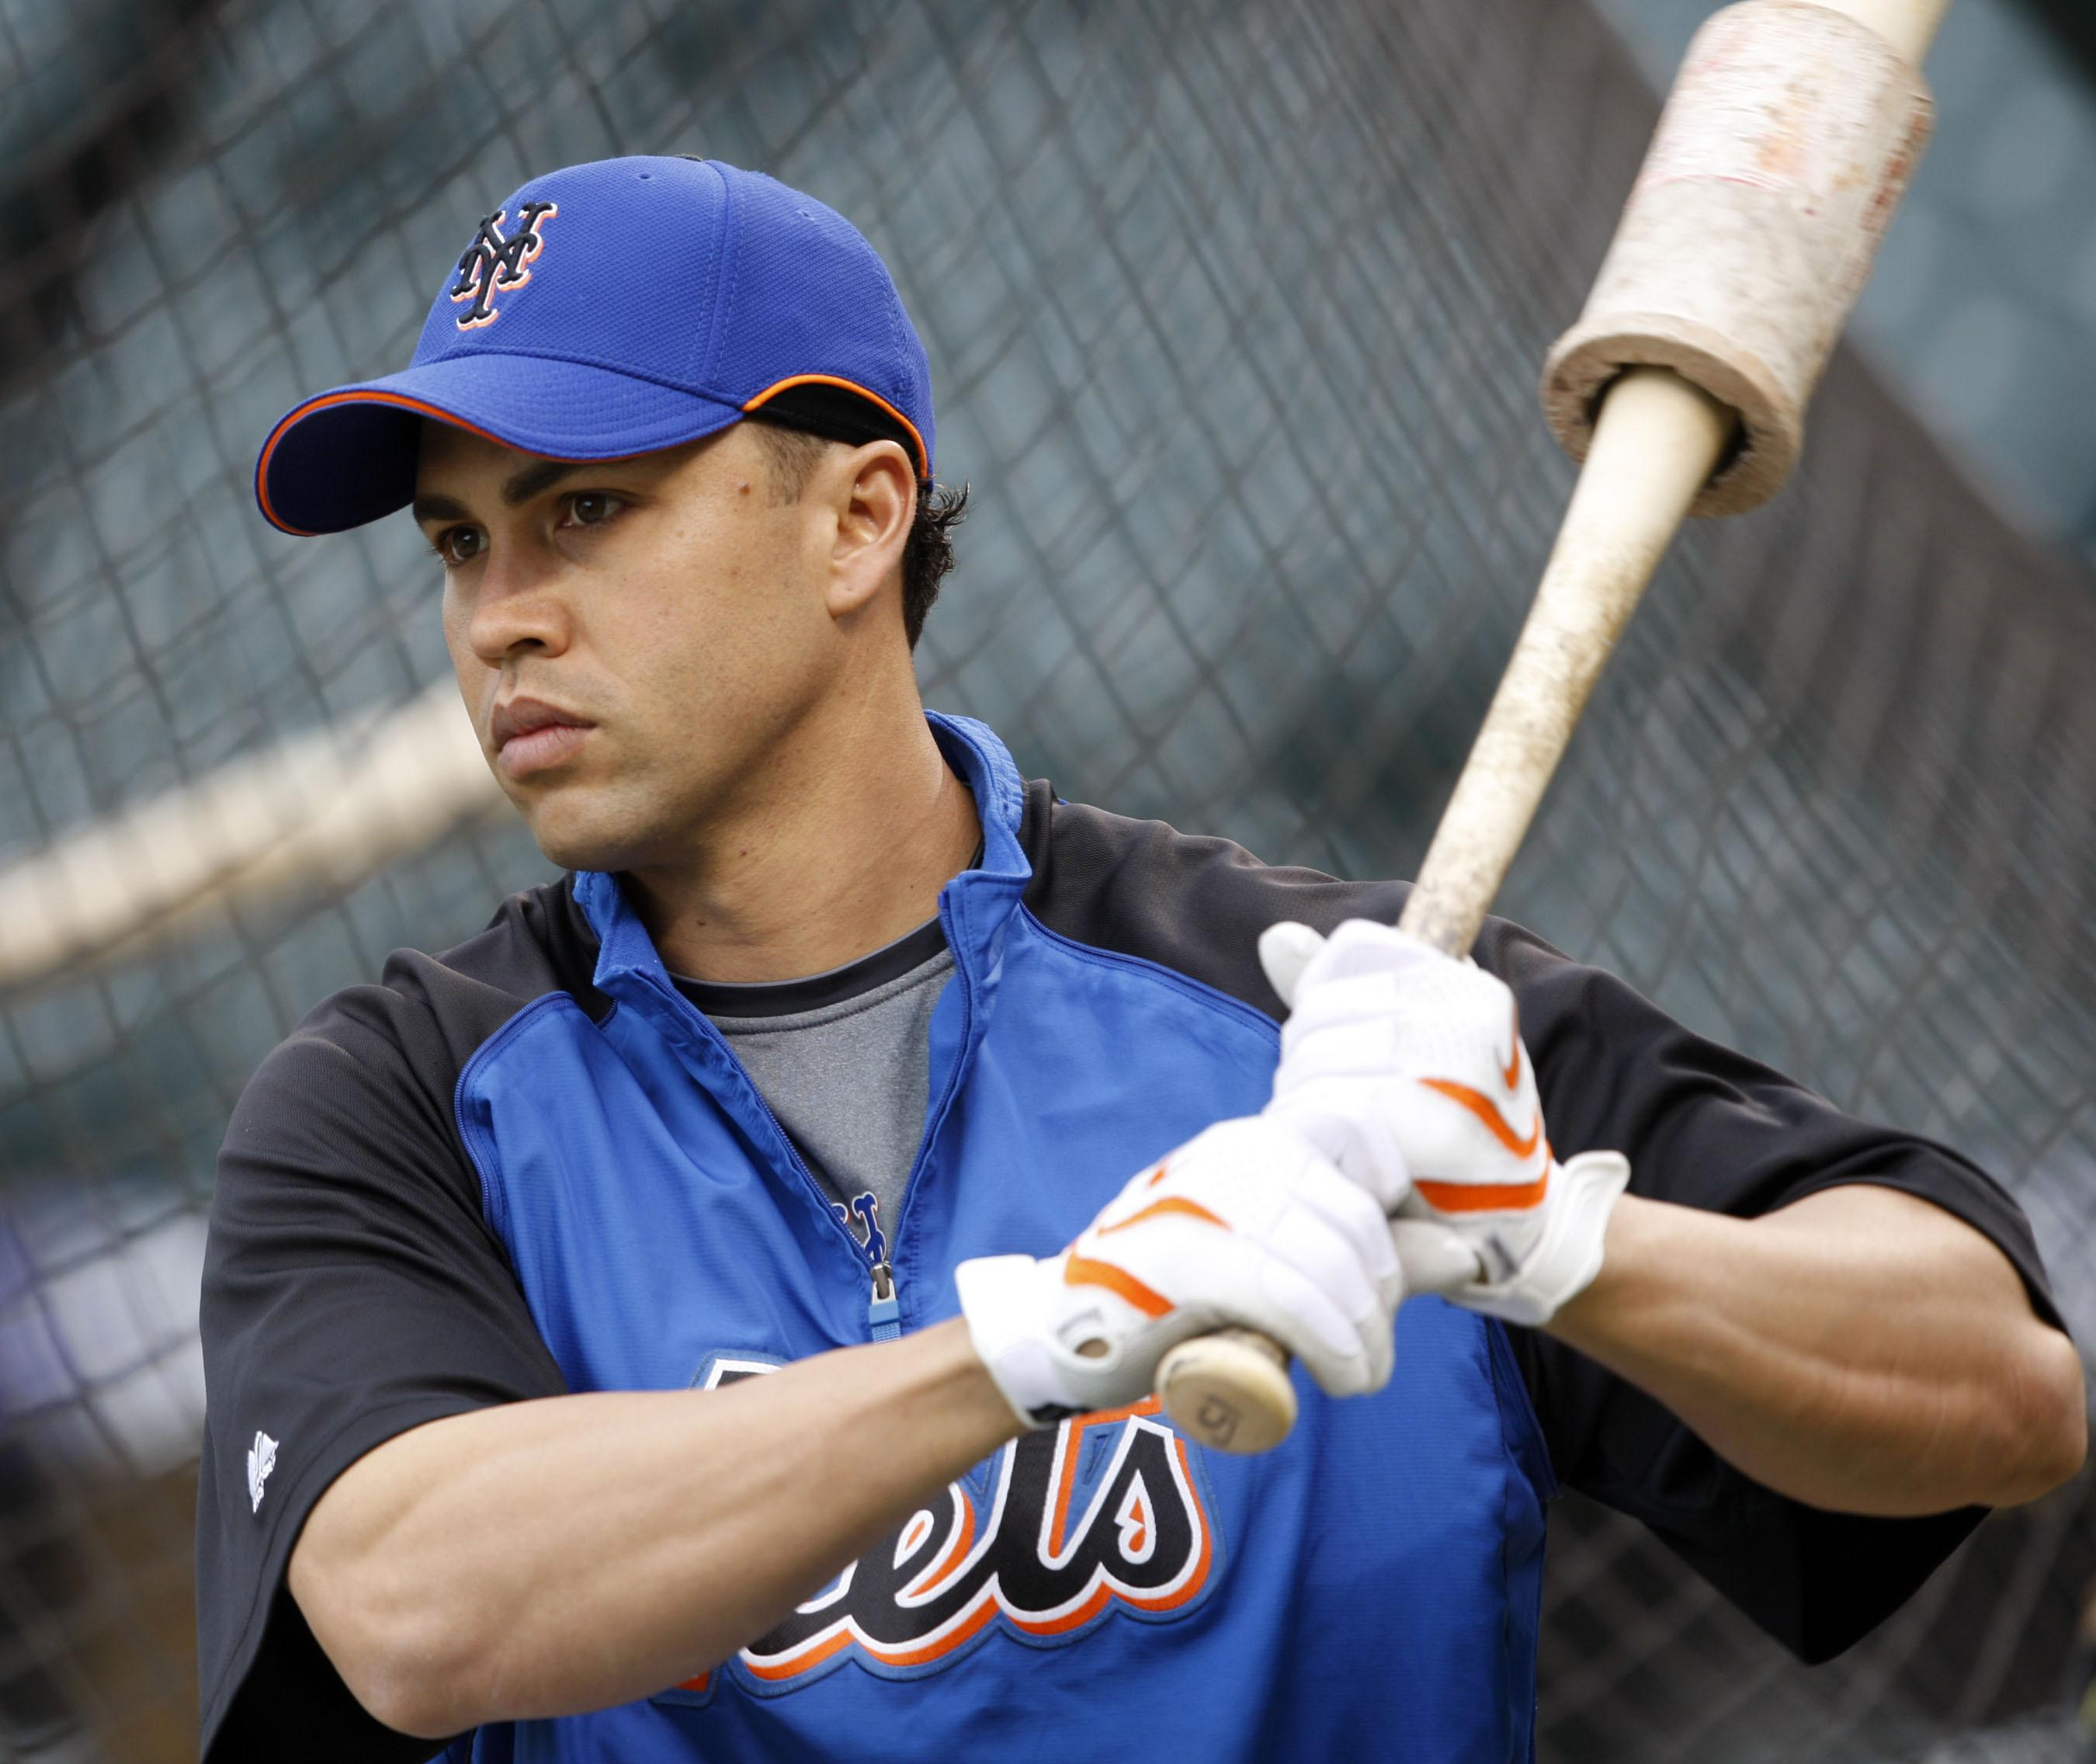 Carlos Beltran >> Mets Hire Carlos Beltran As Manager The Spokesman Review